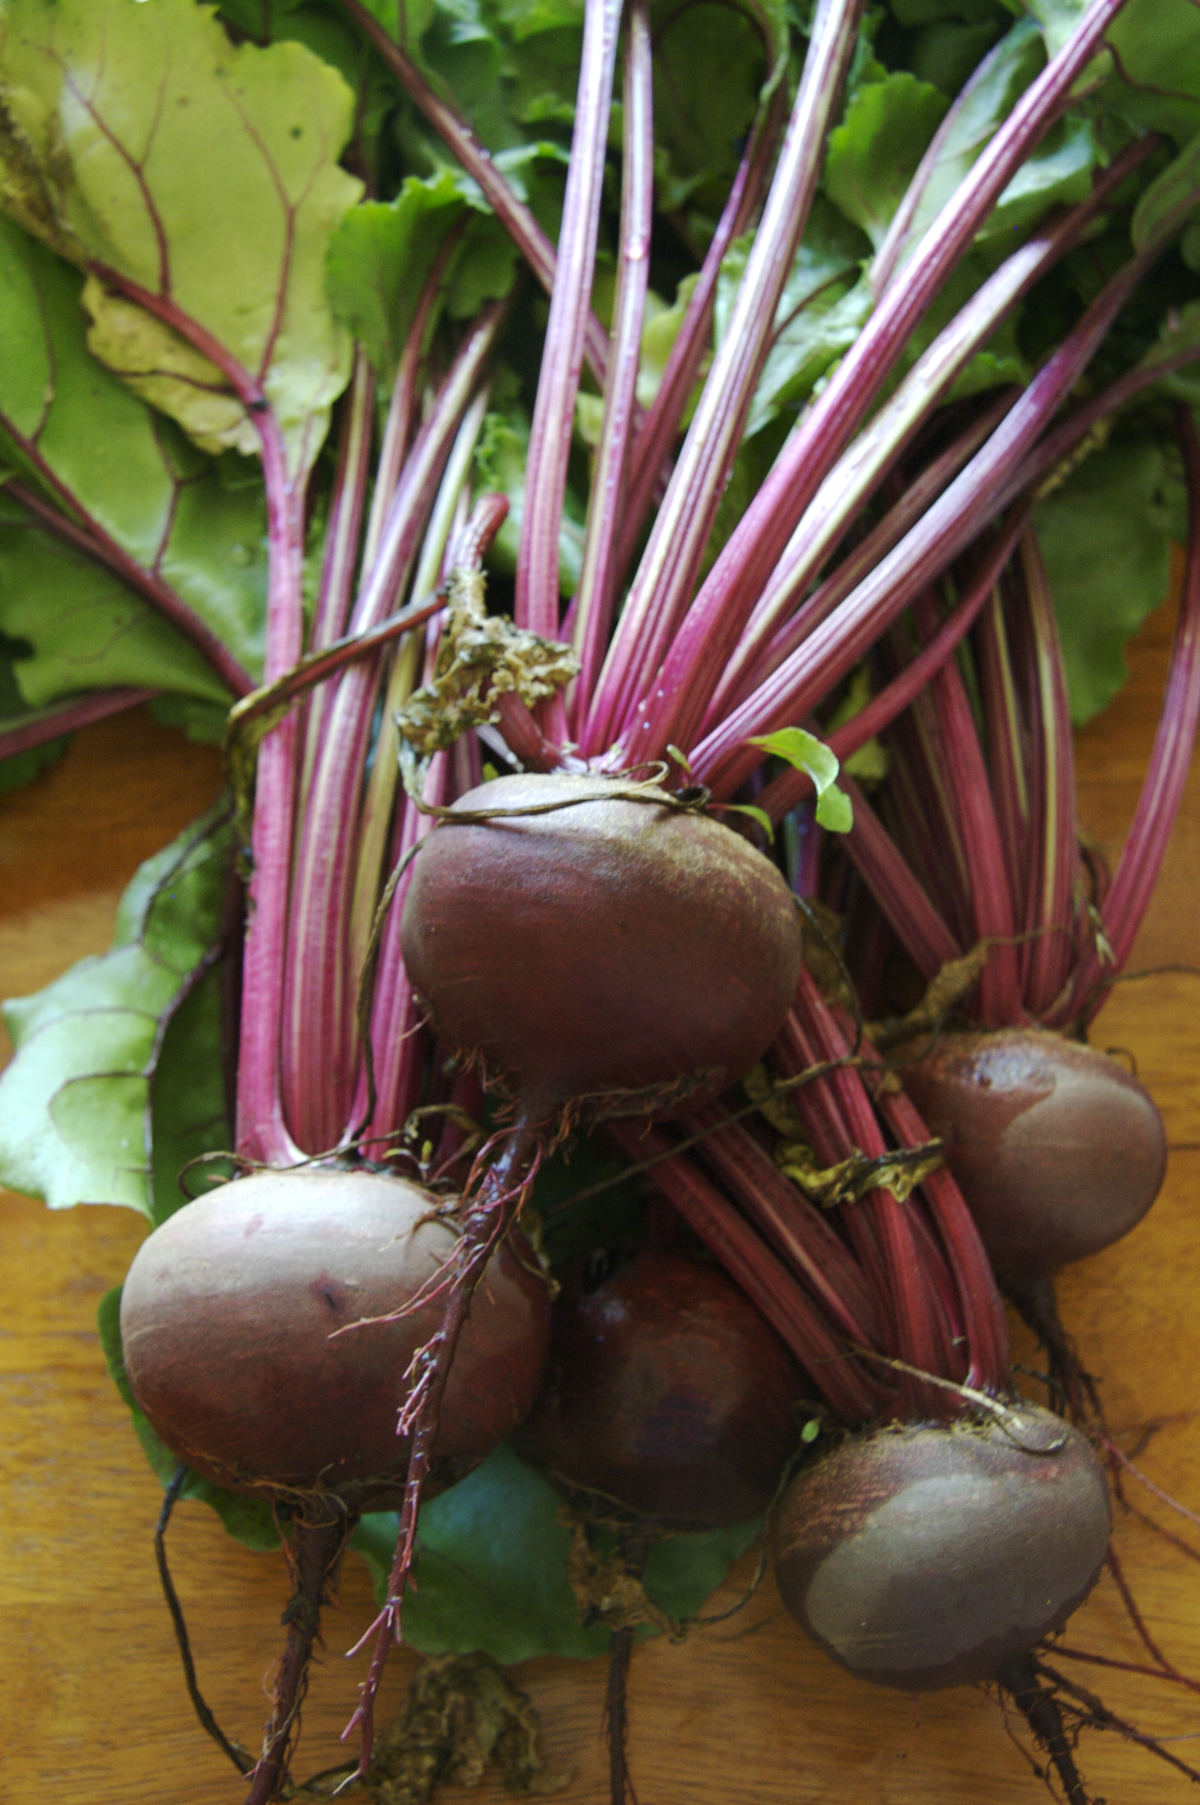 Beetroot - Wikipedia